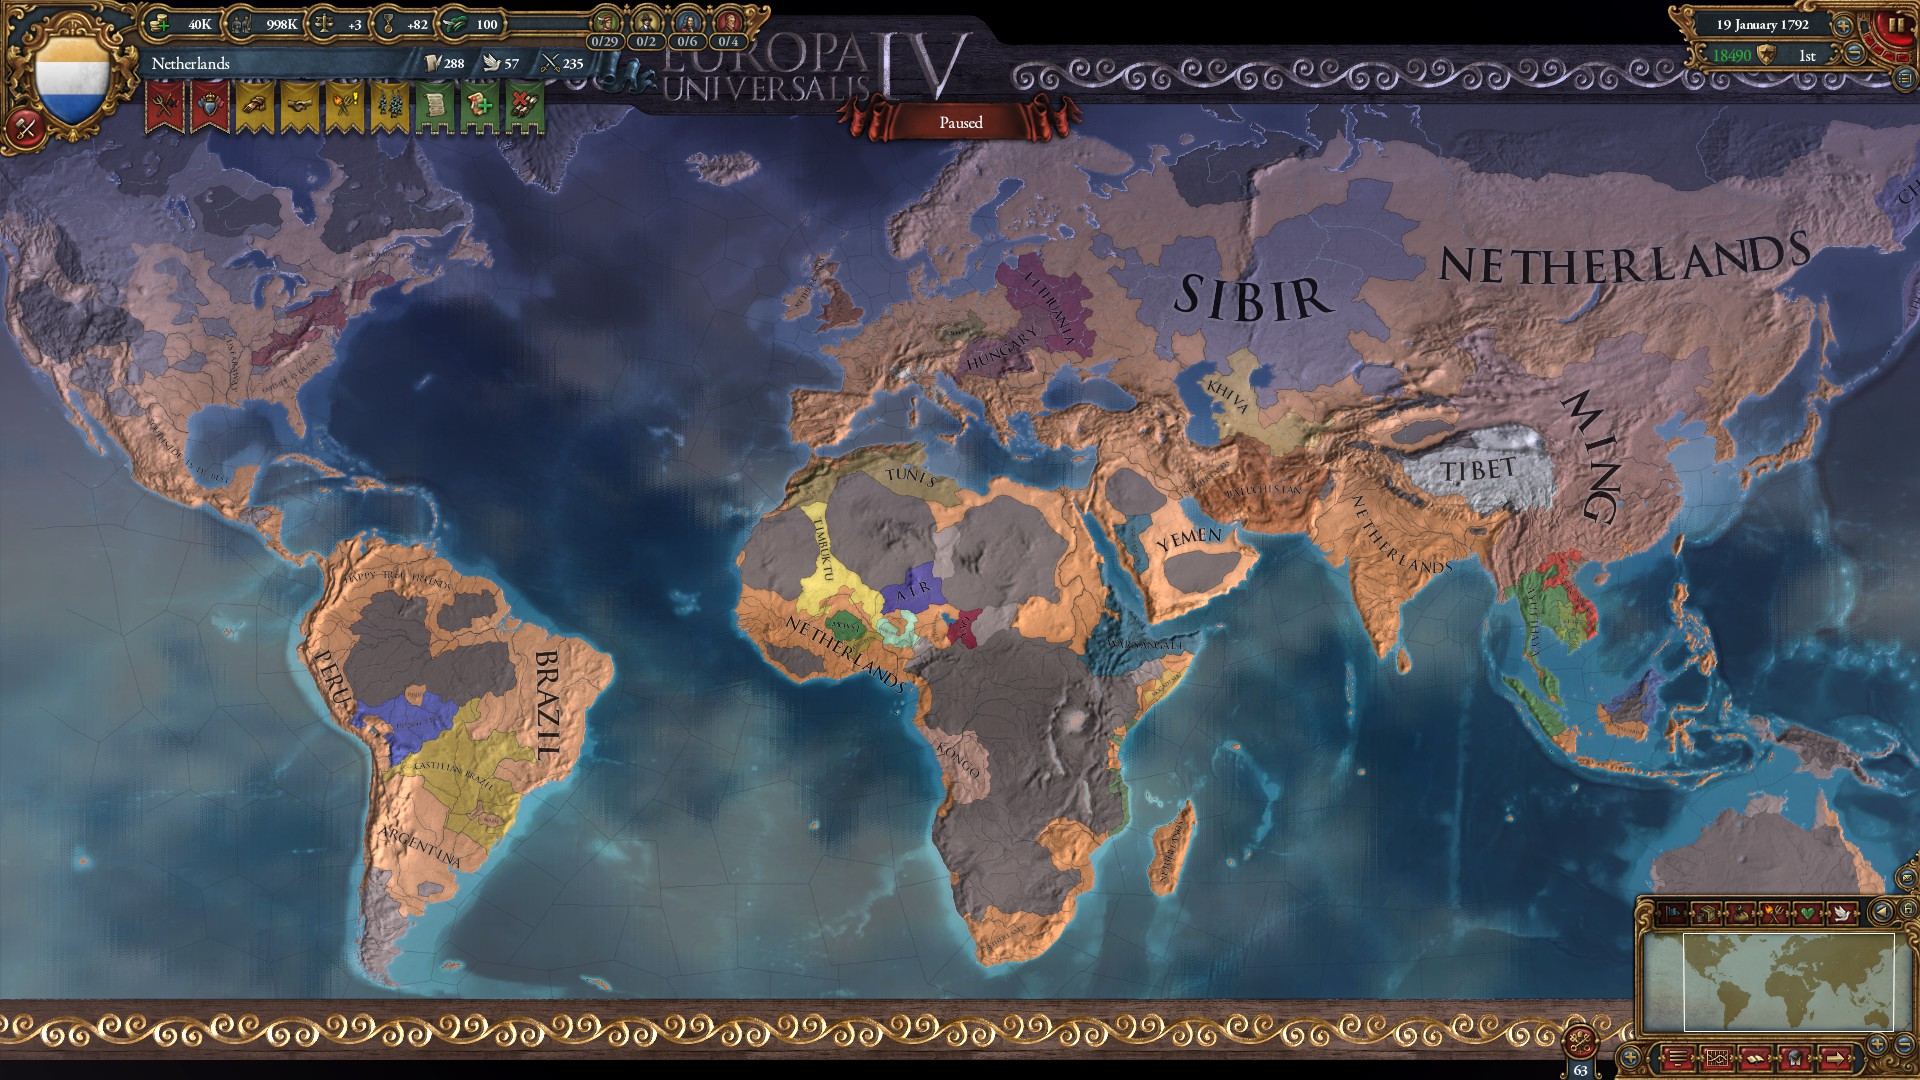 Steam Community :: Guide :: Basic OPM World Conquest guide